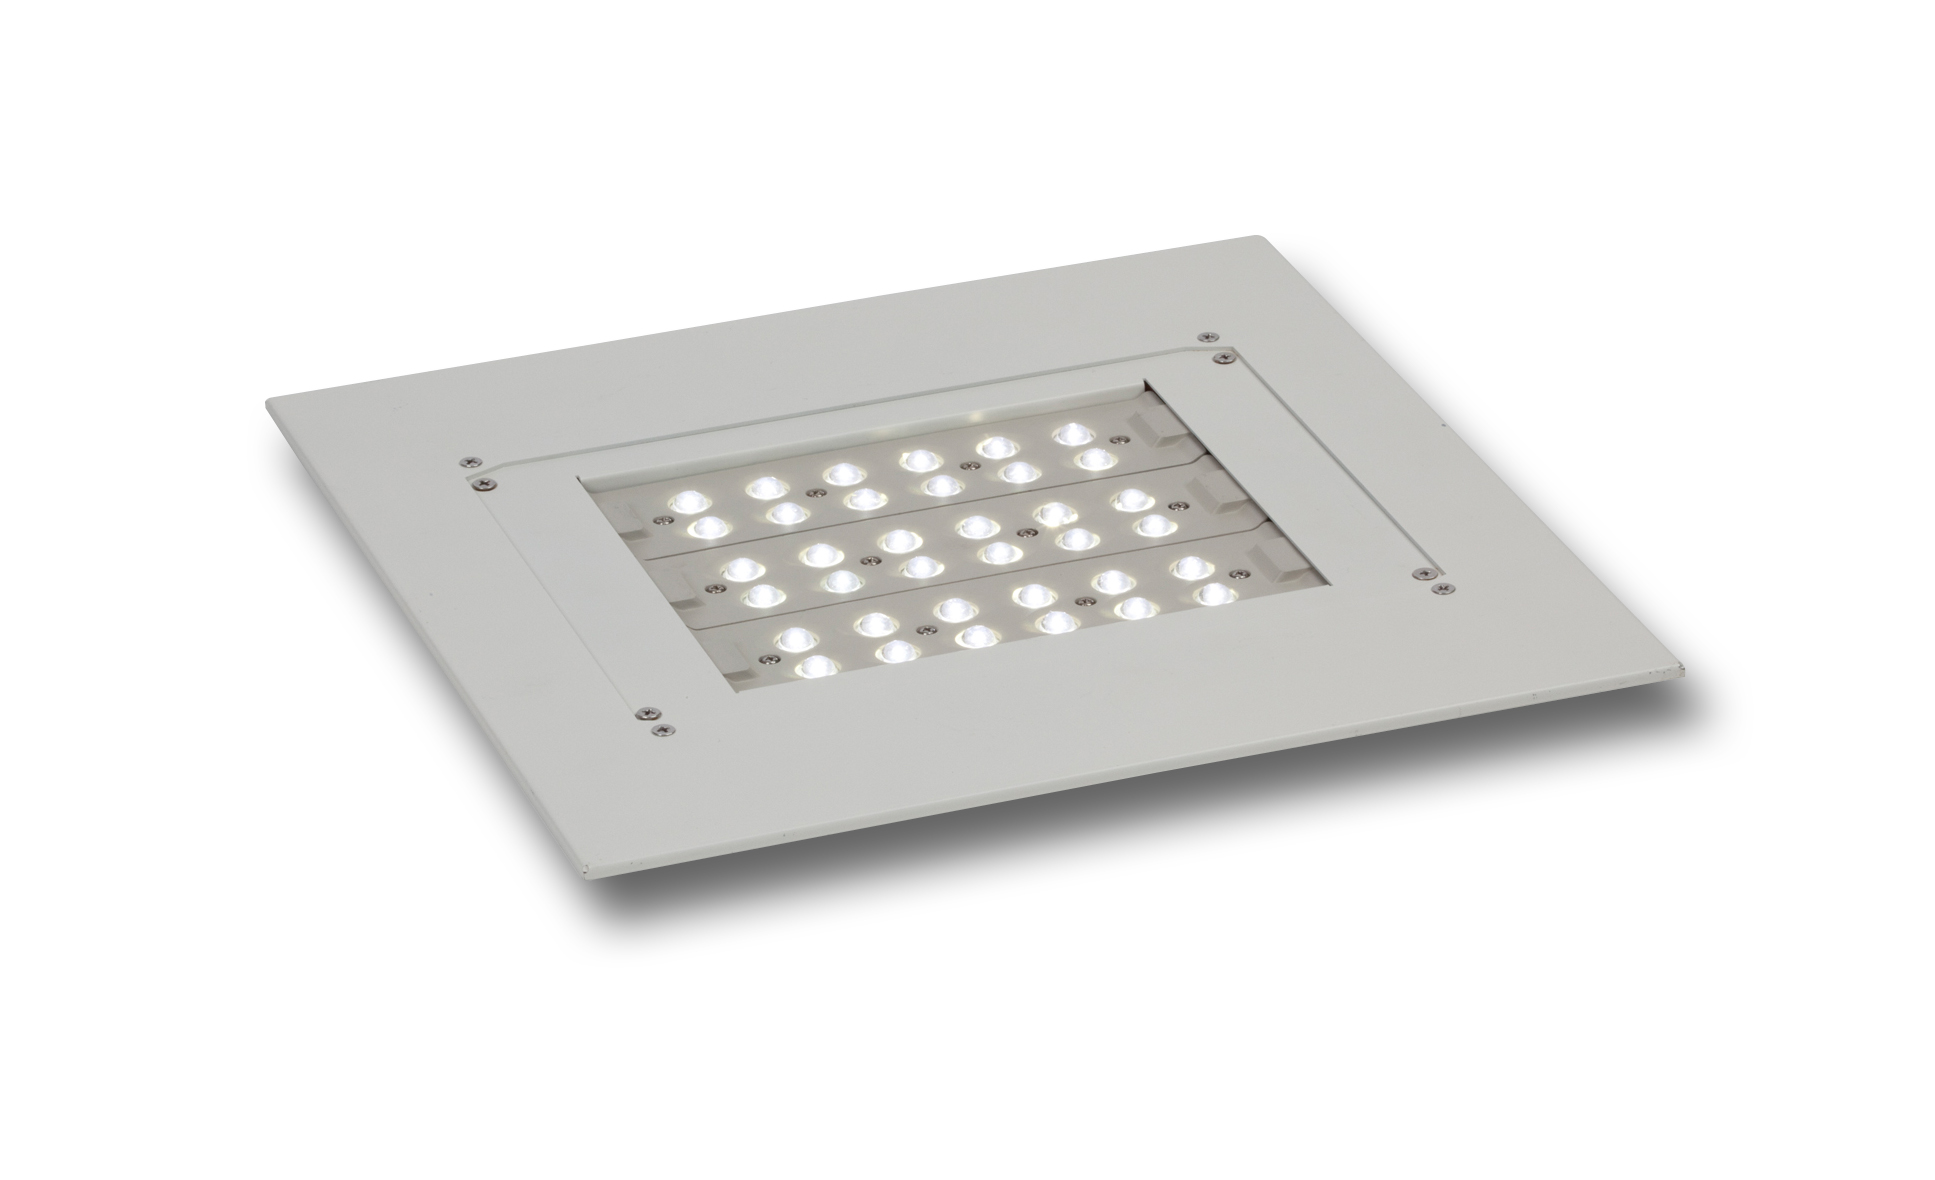 GEu0027s Evolve™ LED Canopy Light  sc 1 st  GE Lighting North America News & GEu0027s Evolve™ LED Canopy Light Provides Energy-Efficient Lighting ... azcodes.com